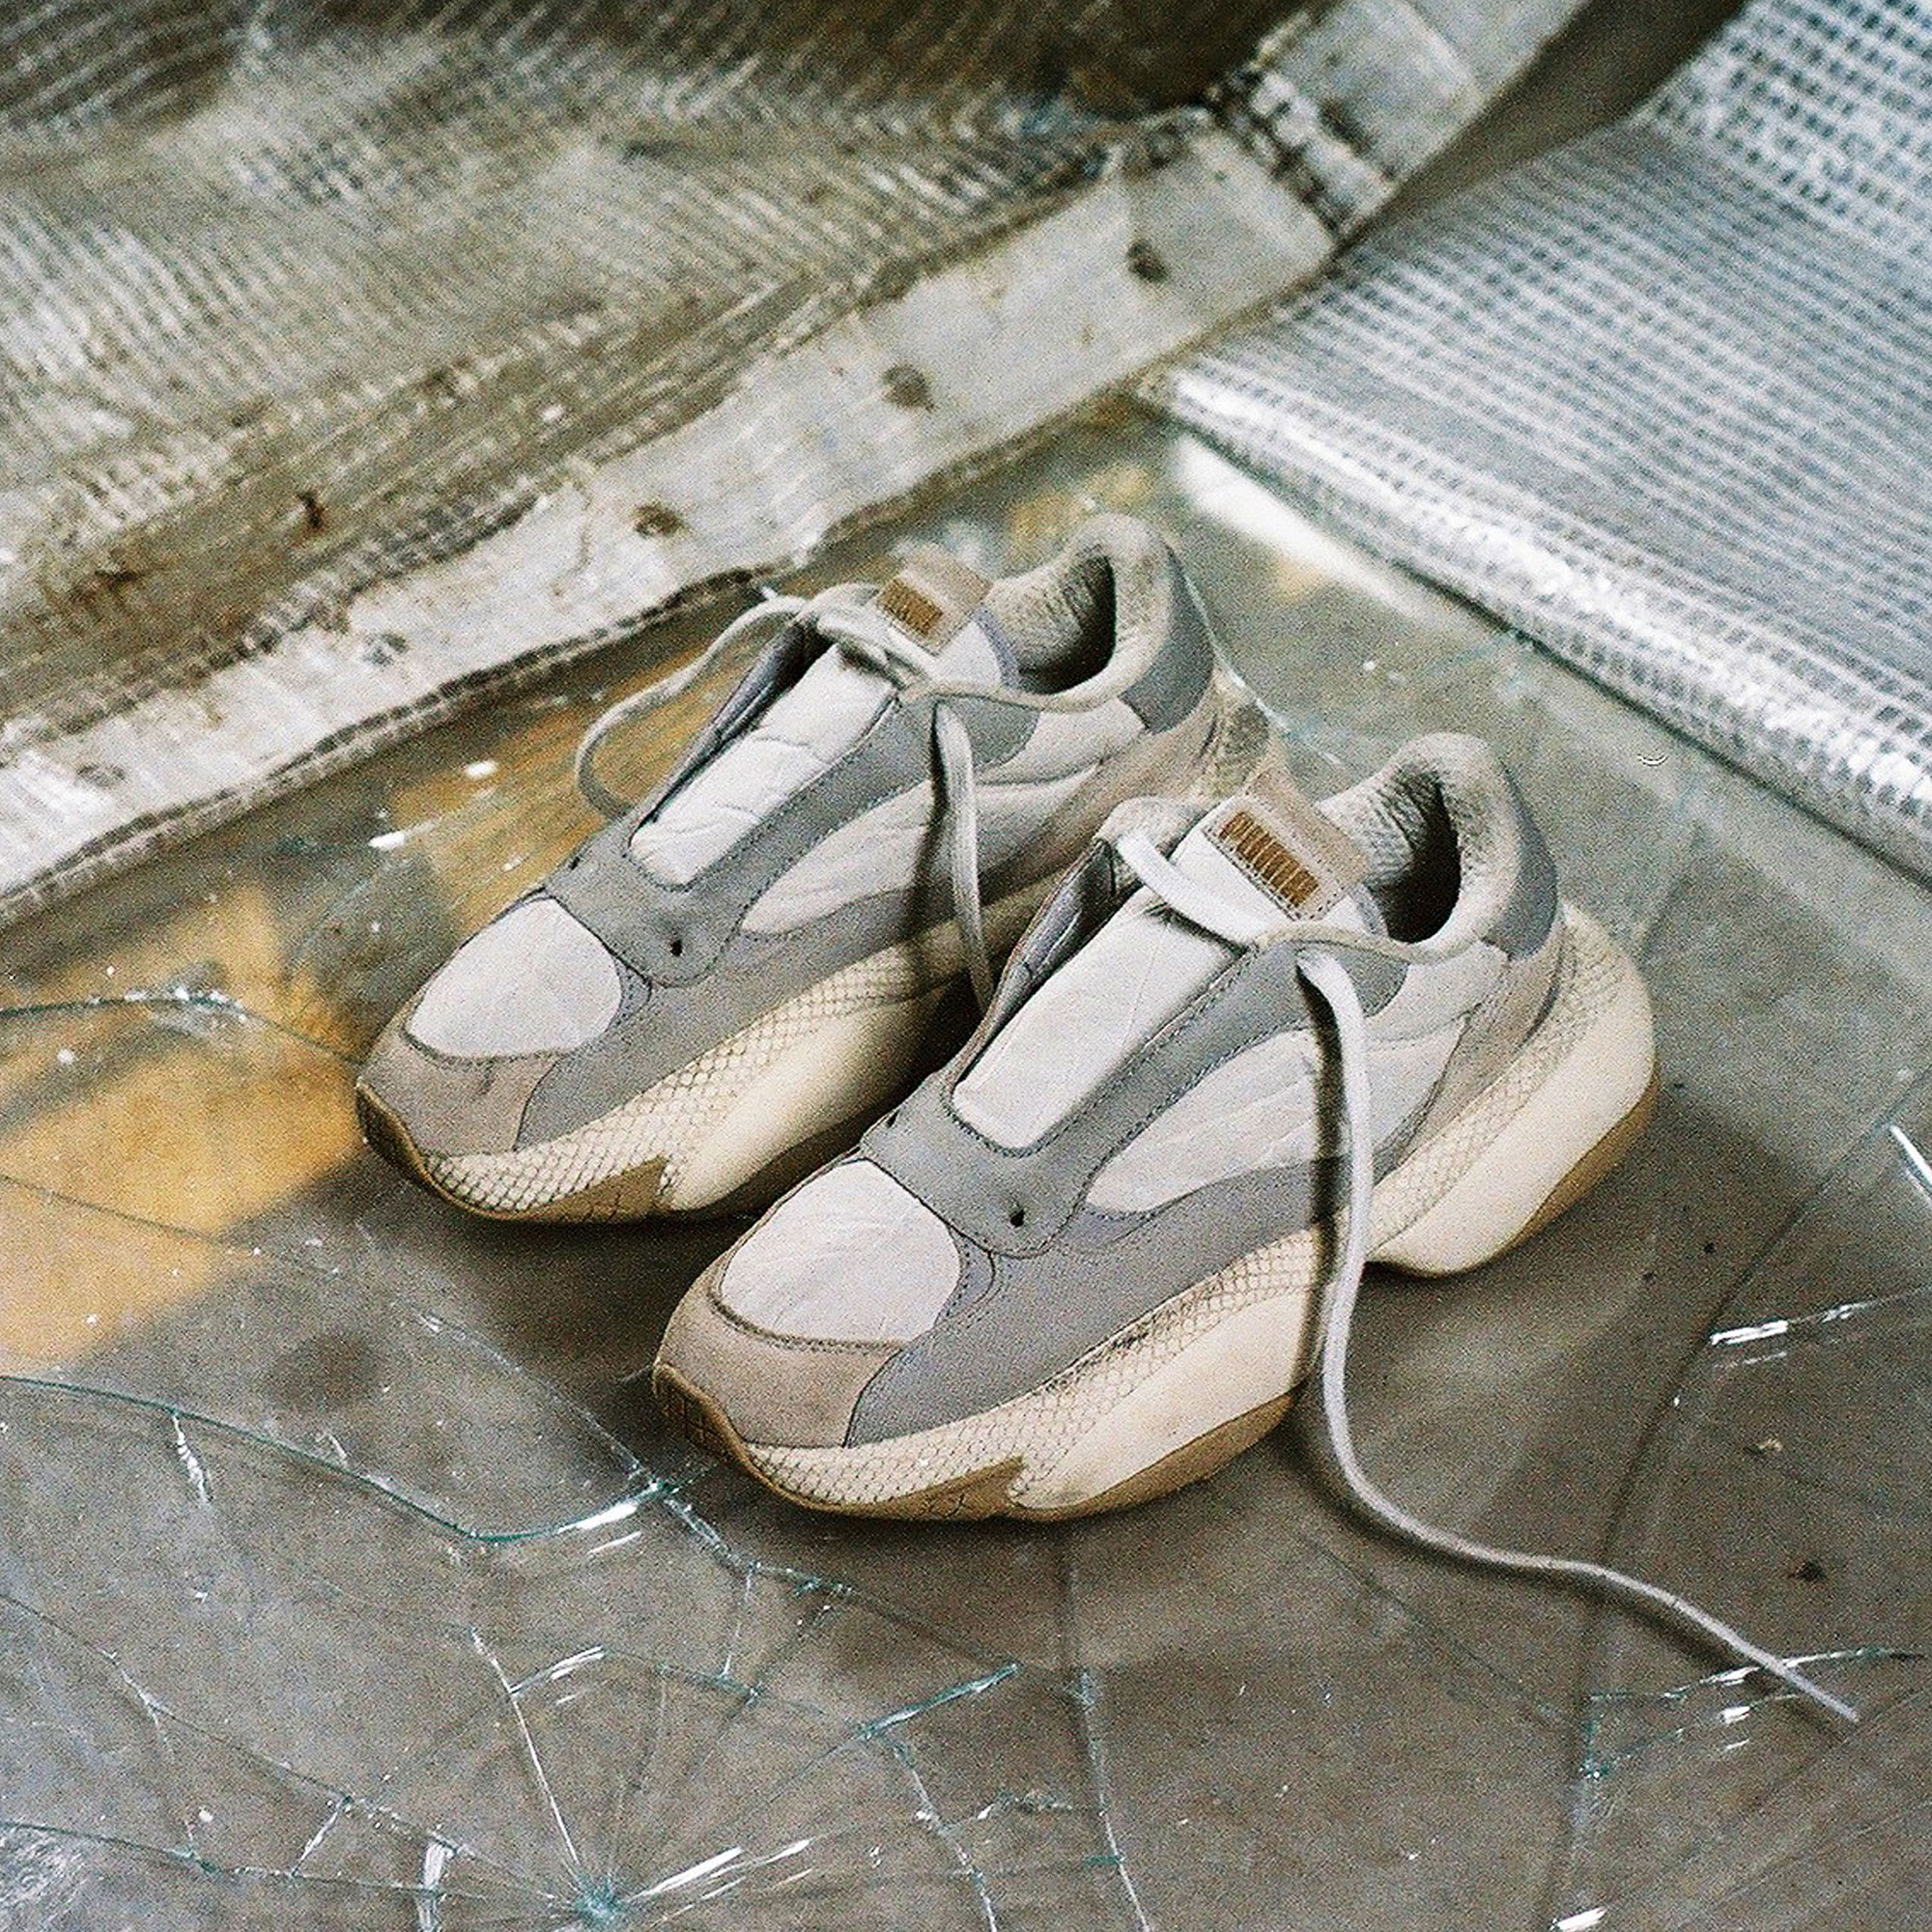 Explore Dystopia With The Alteration PN-1